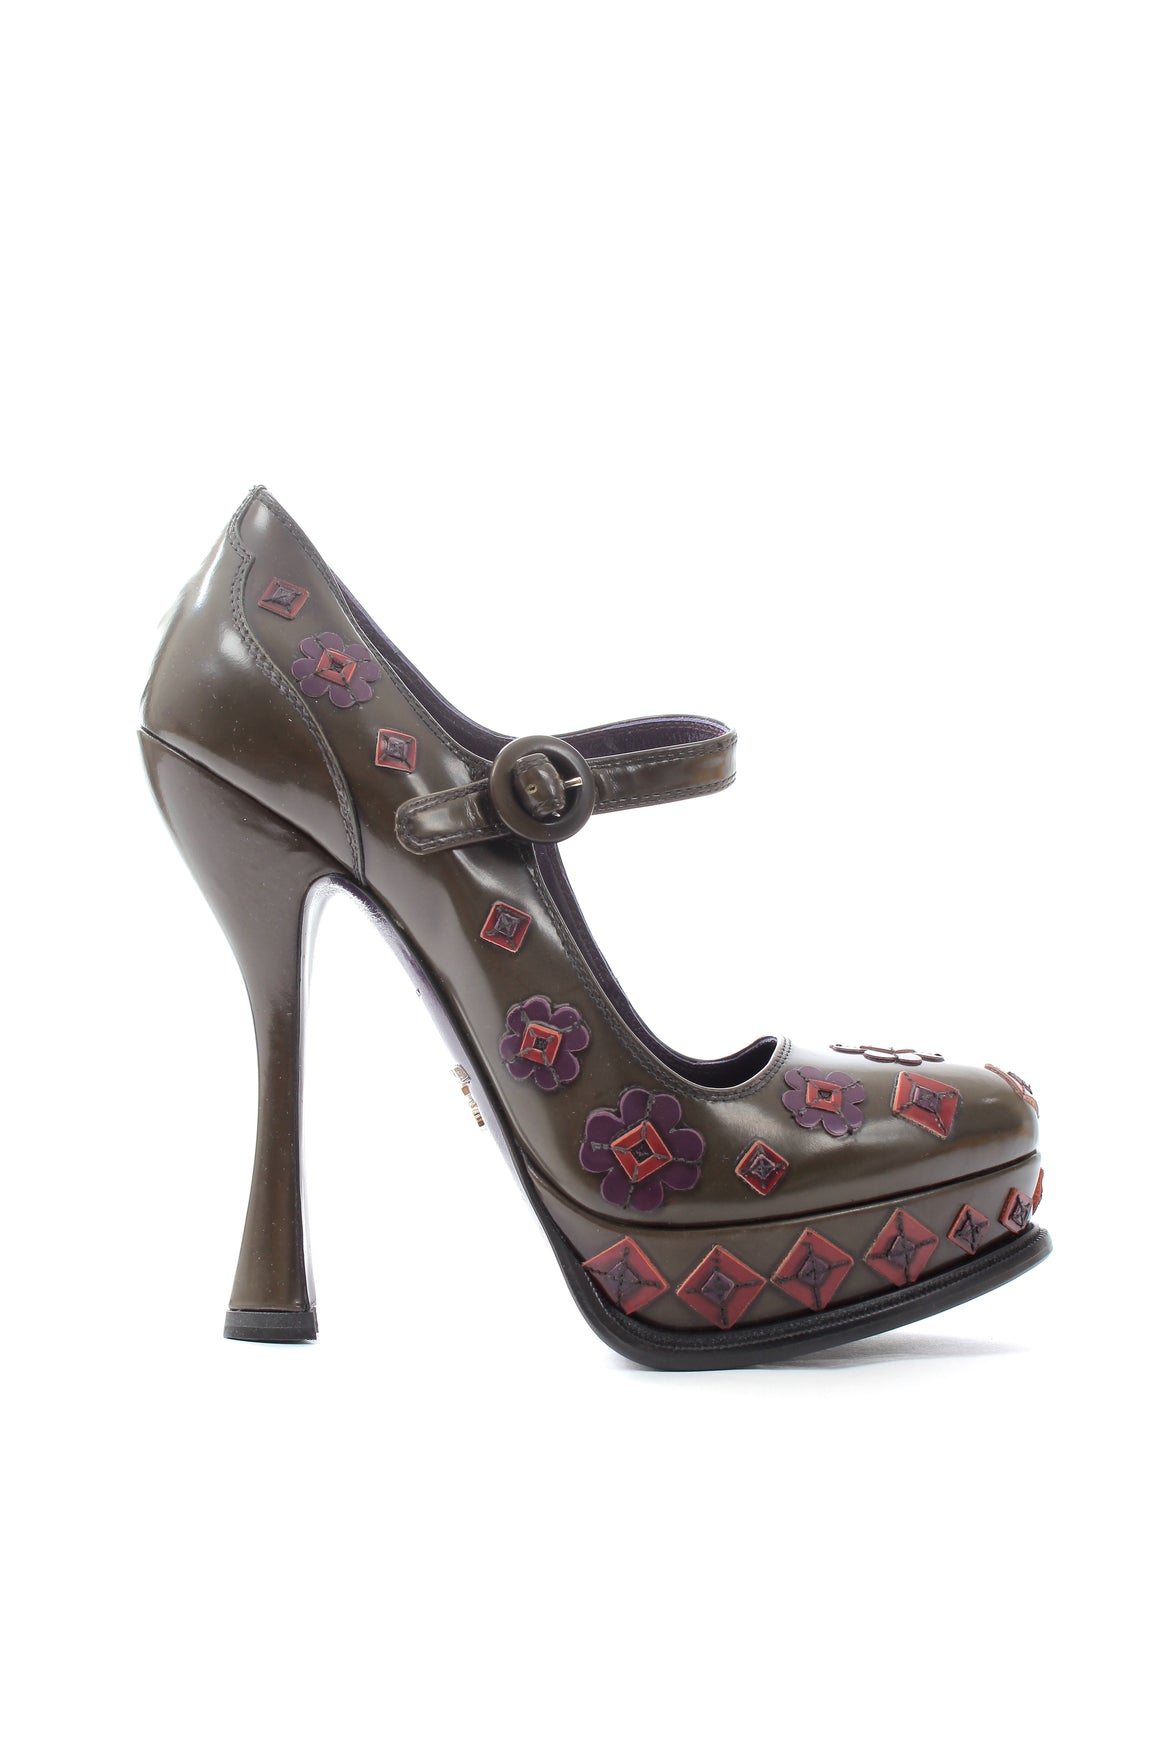 Prada Flower-Detailed Mary-Jane Platform Pumps